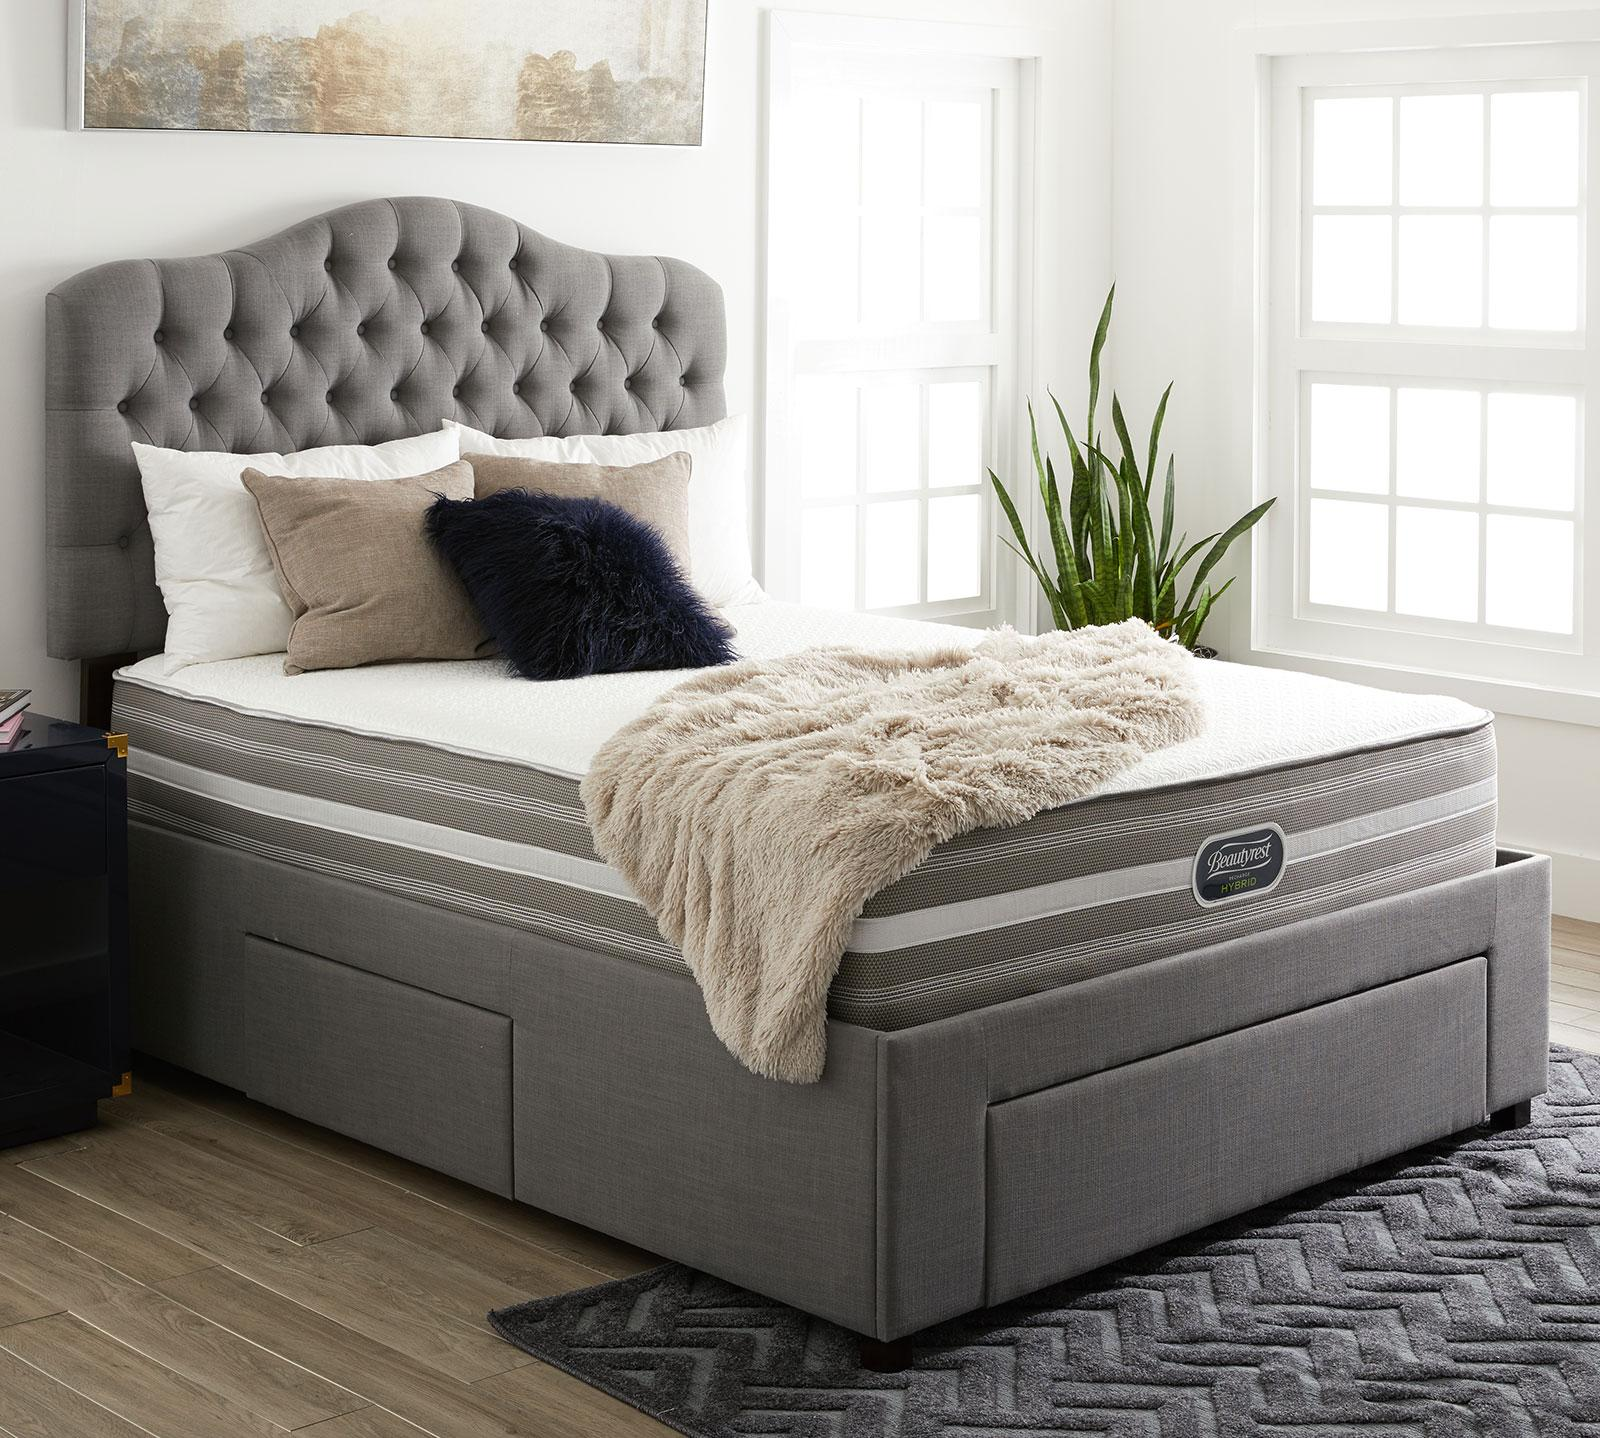 Superbe Mattress Firm